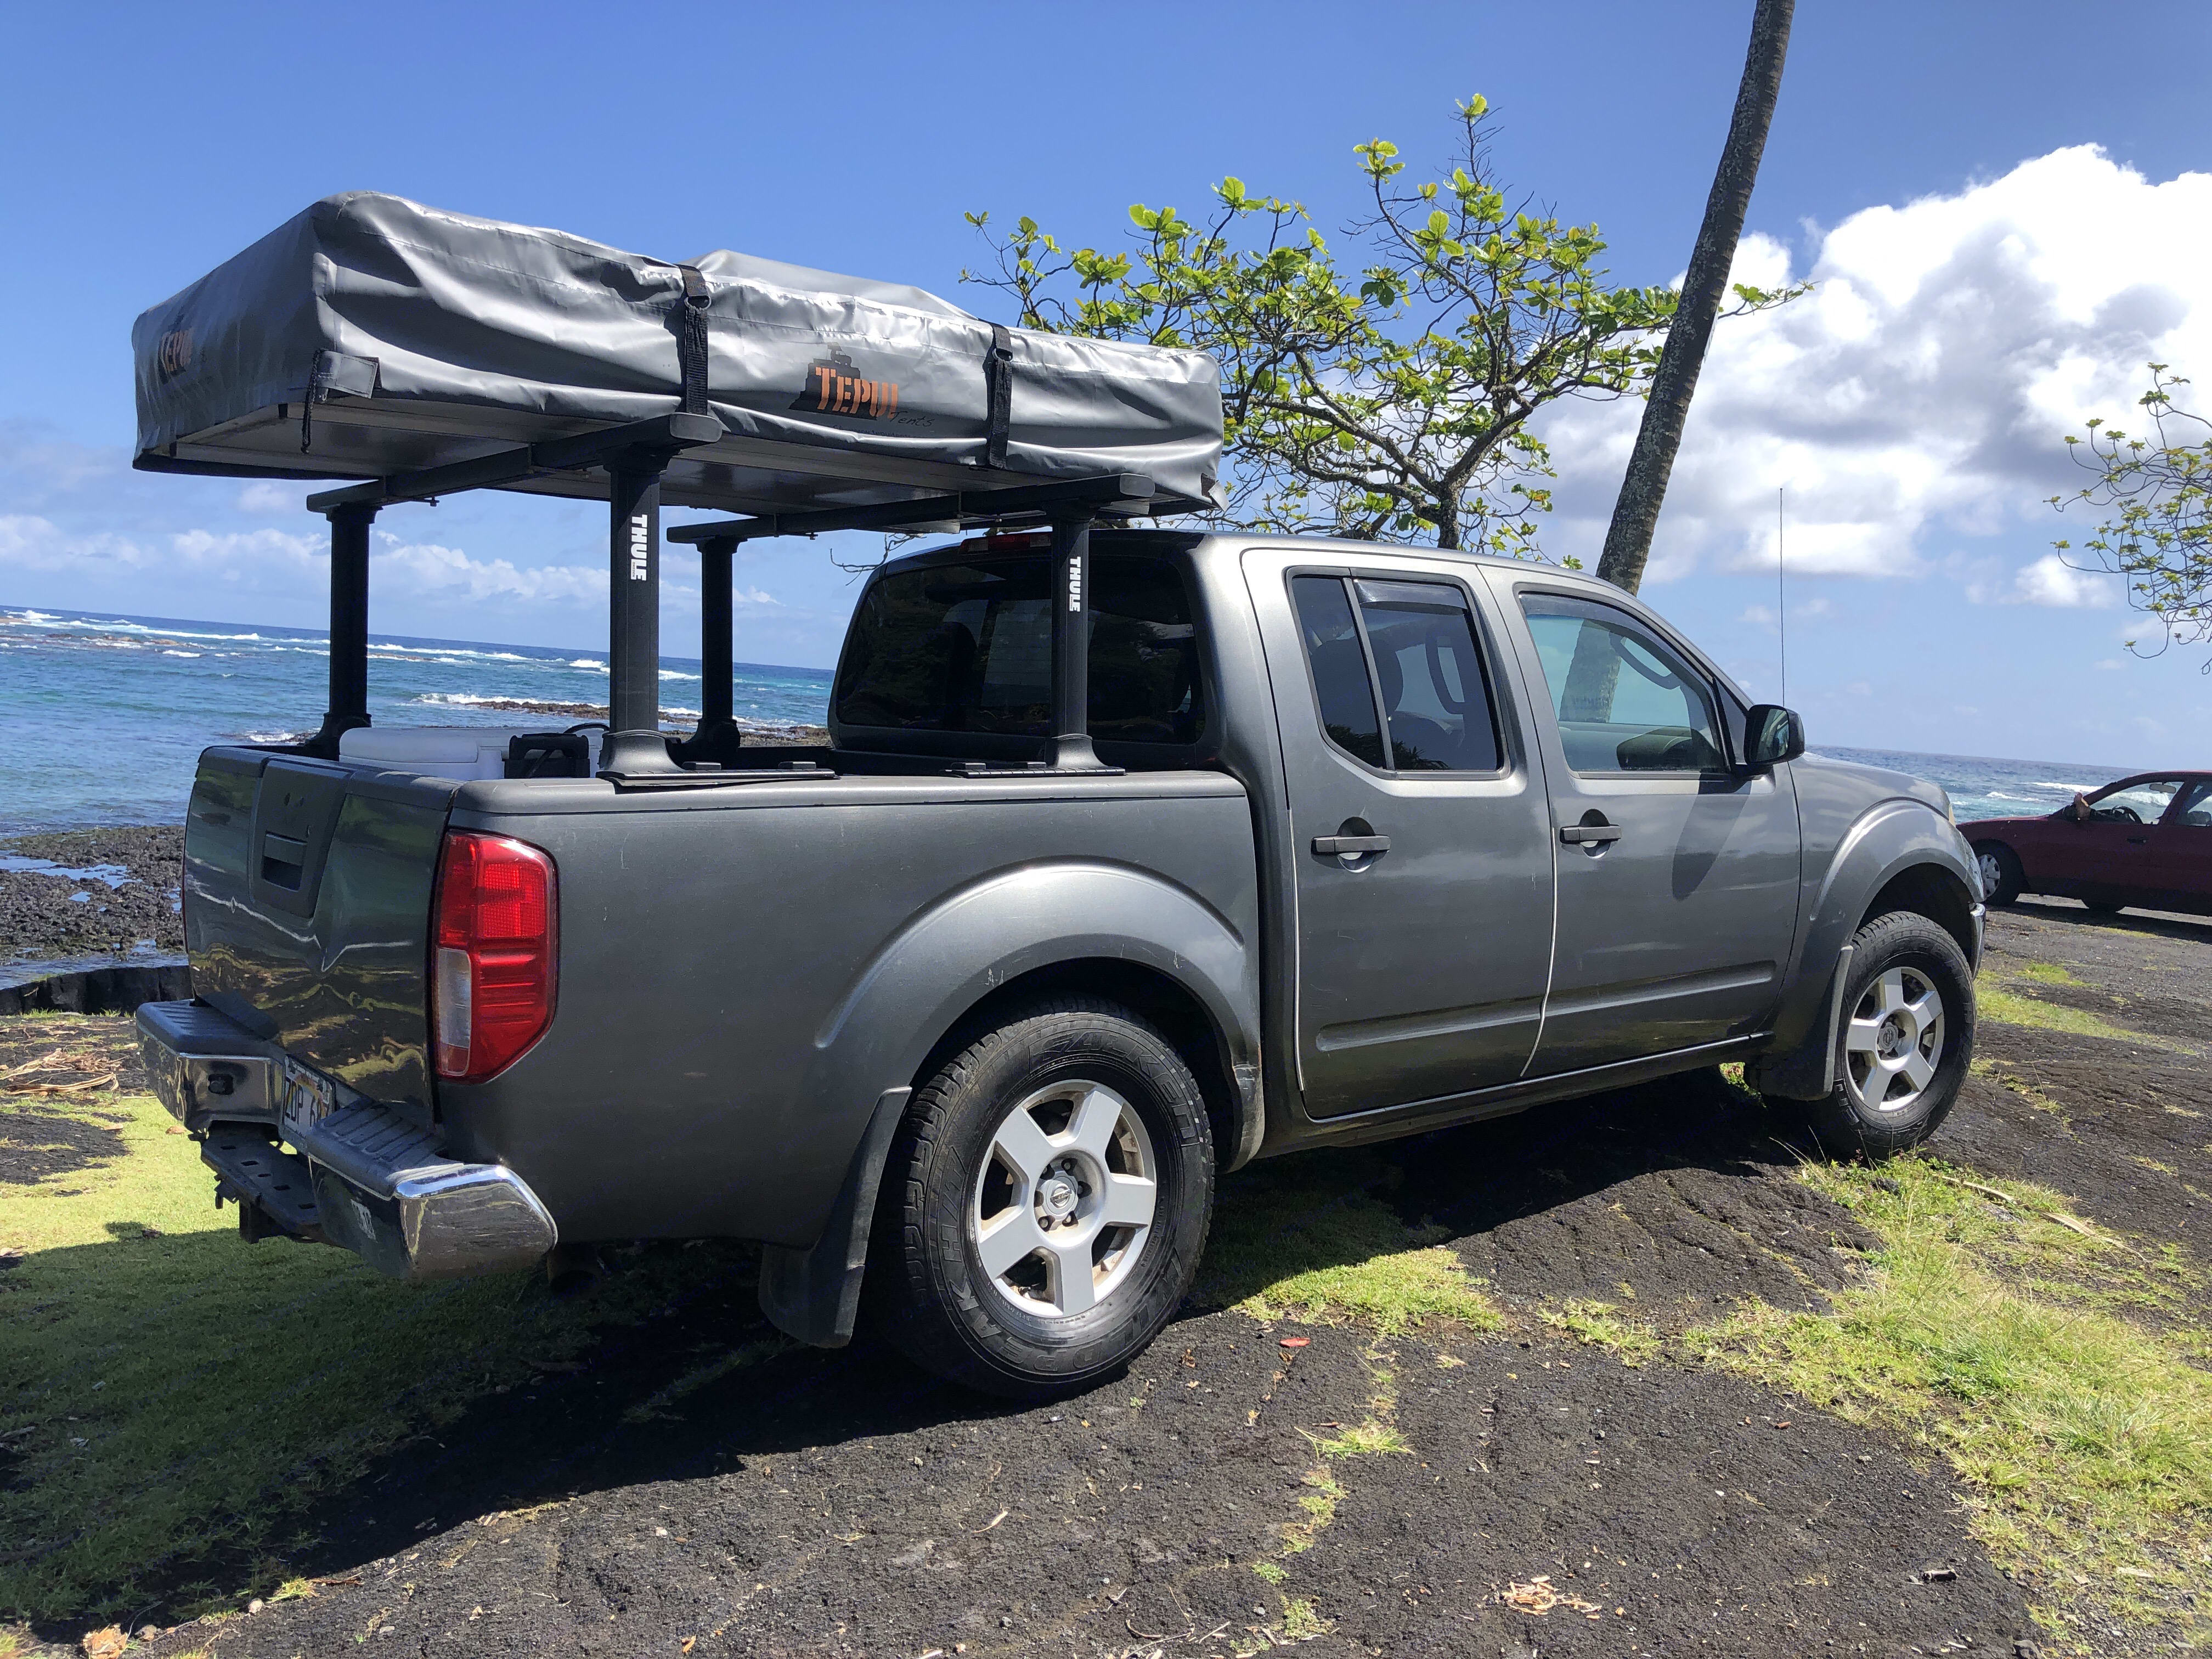 Our Nismo 4x4 Frontier is rugged and ready for the Hawaii terrain!. Nissan Frontier Nismo 4x4 2007